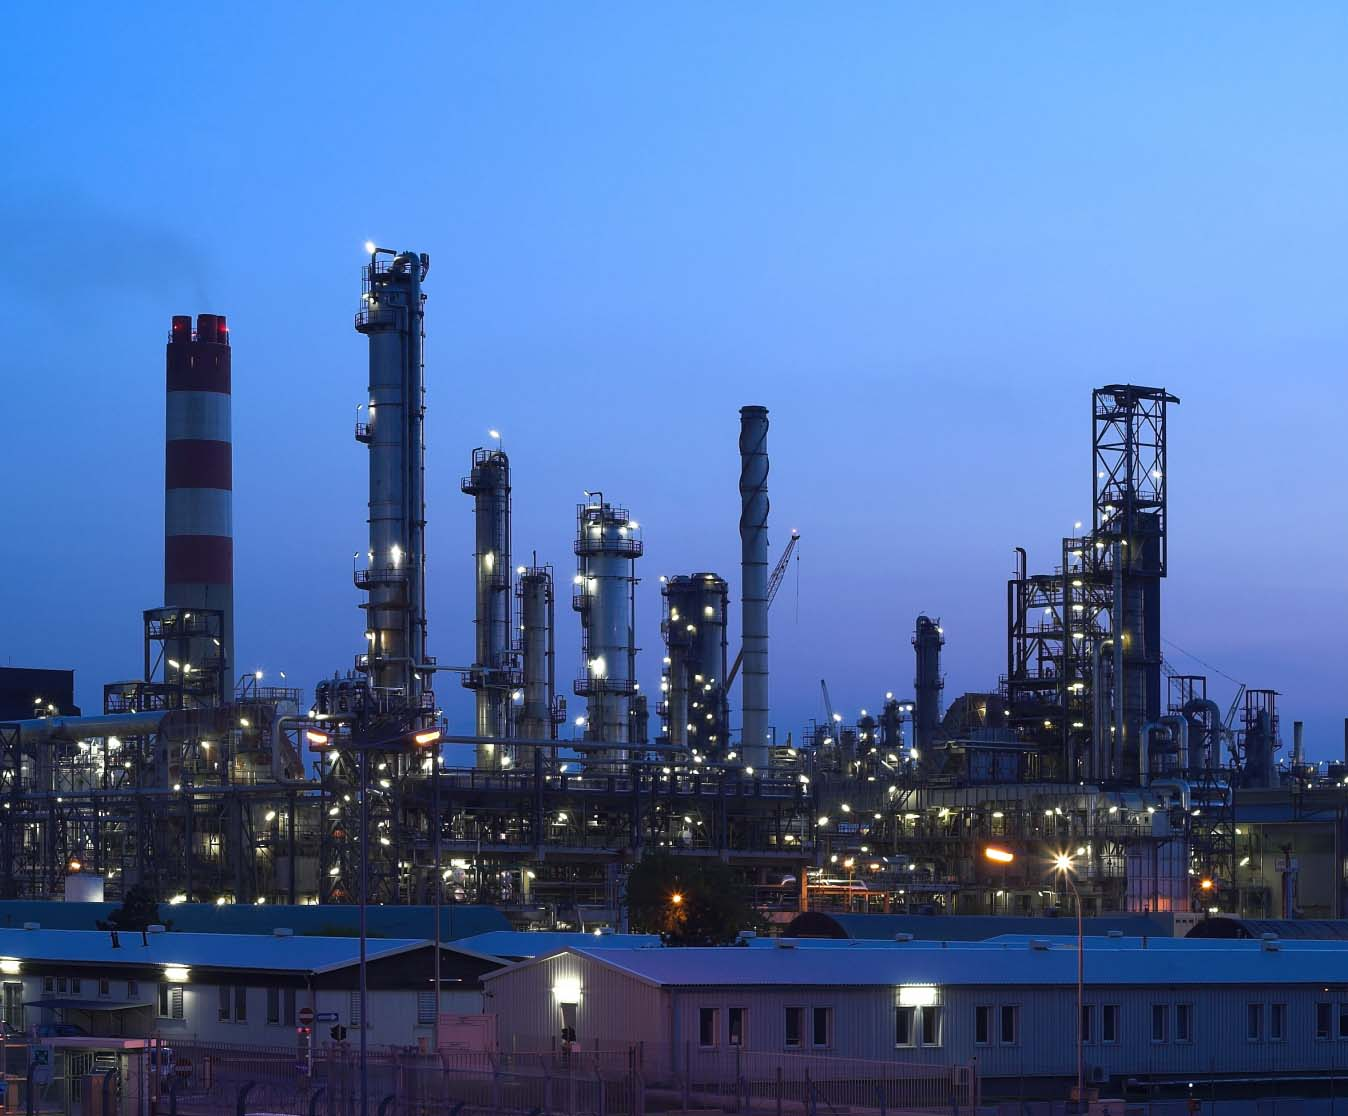 Northern Oil Refinery